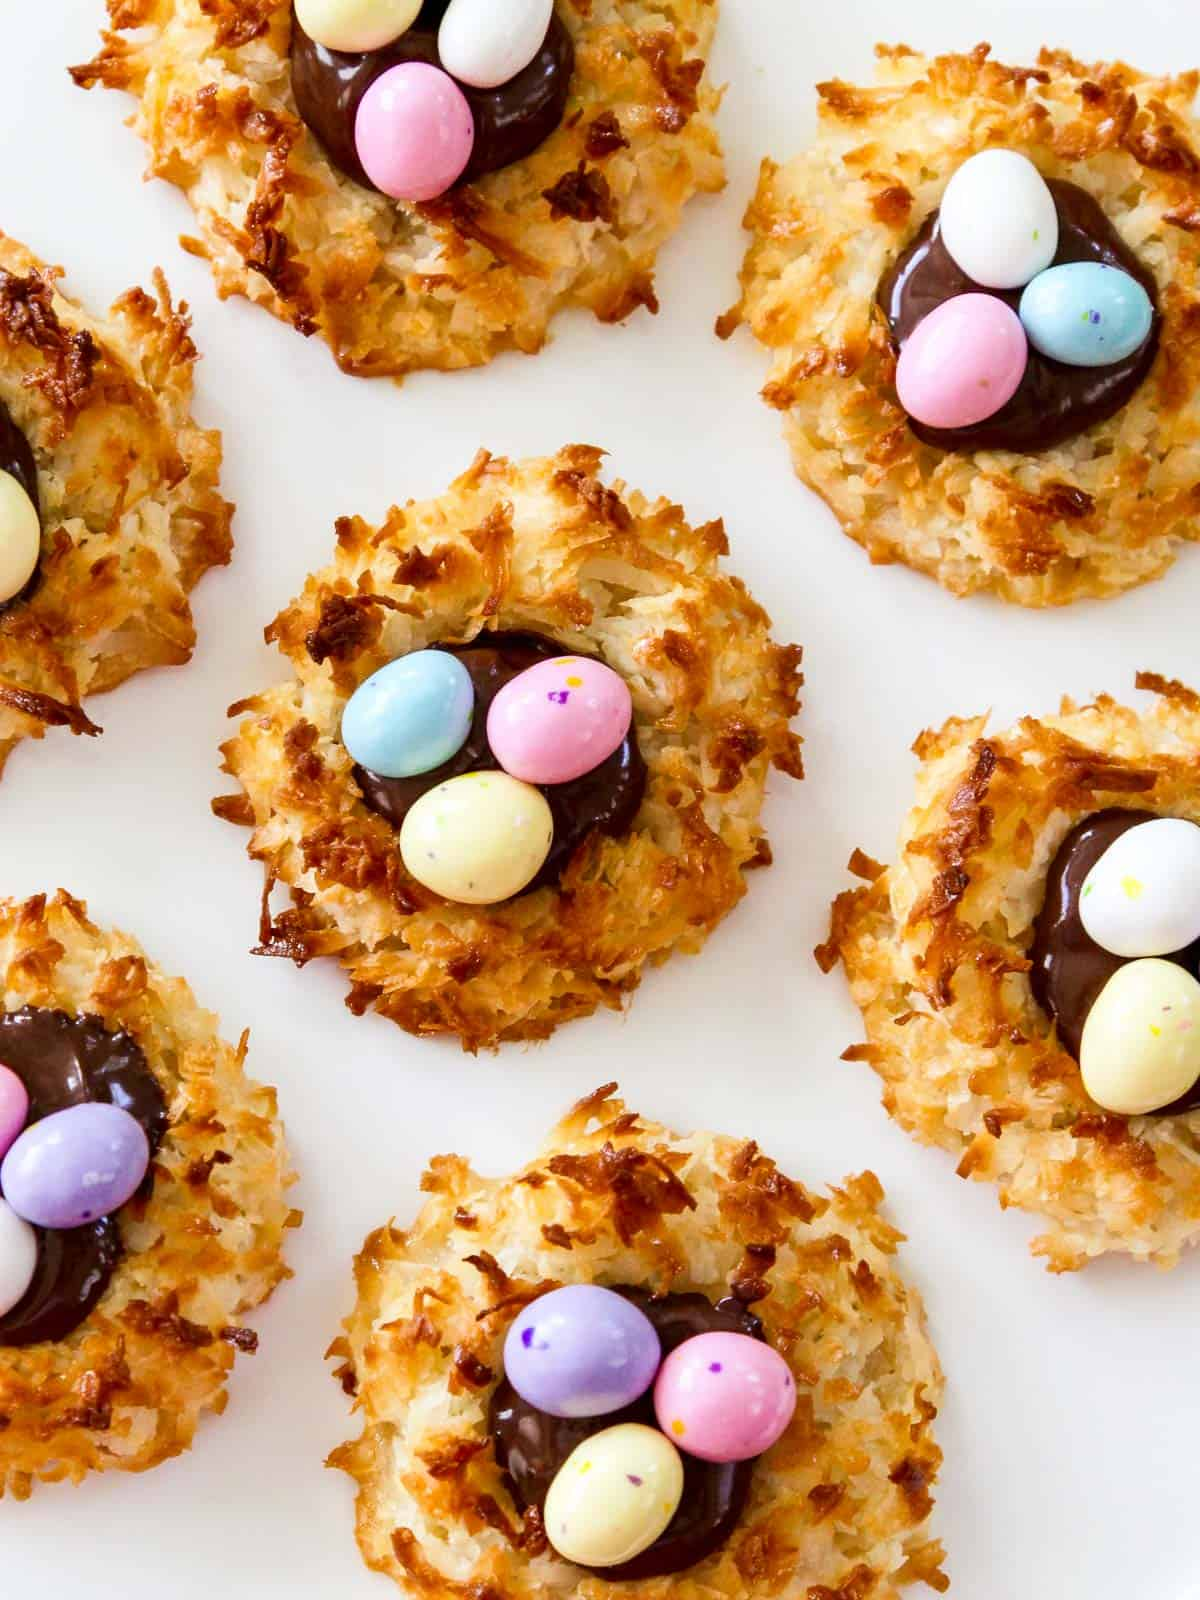 A white plate filled with Easter coconut macaroons decorate with chocolate eggs.